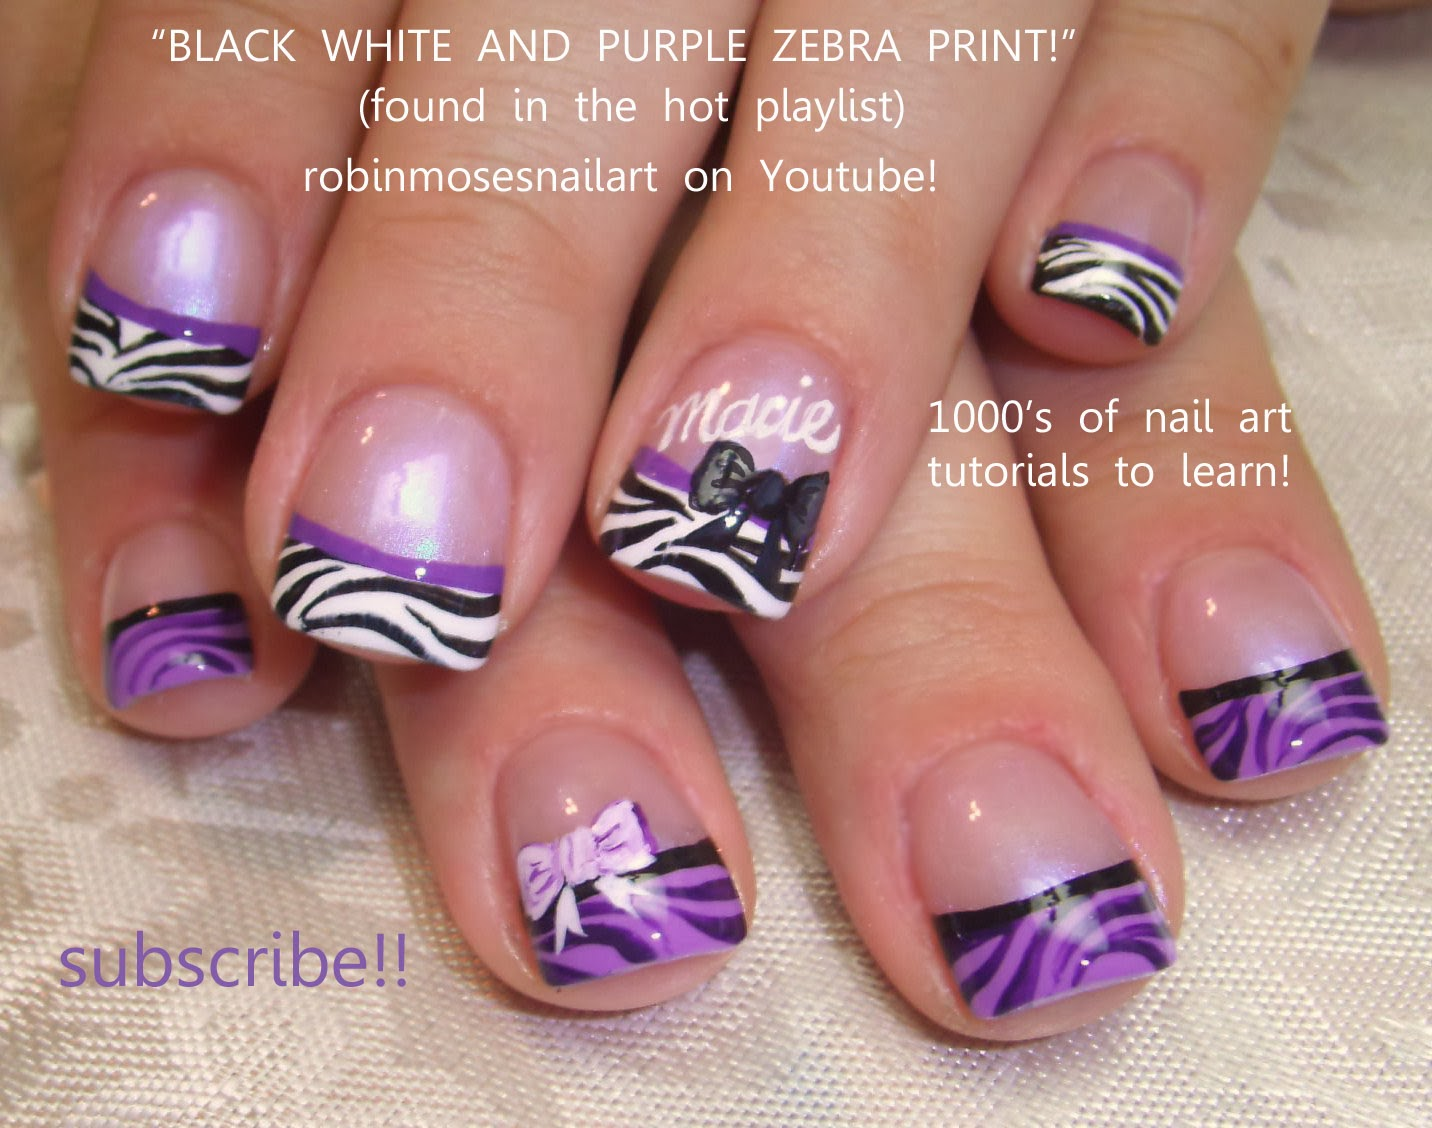 The Cool Purple short nail art designs Digital Imagery